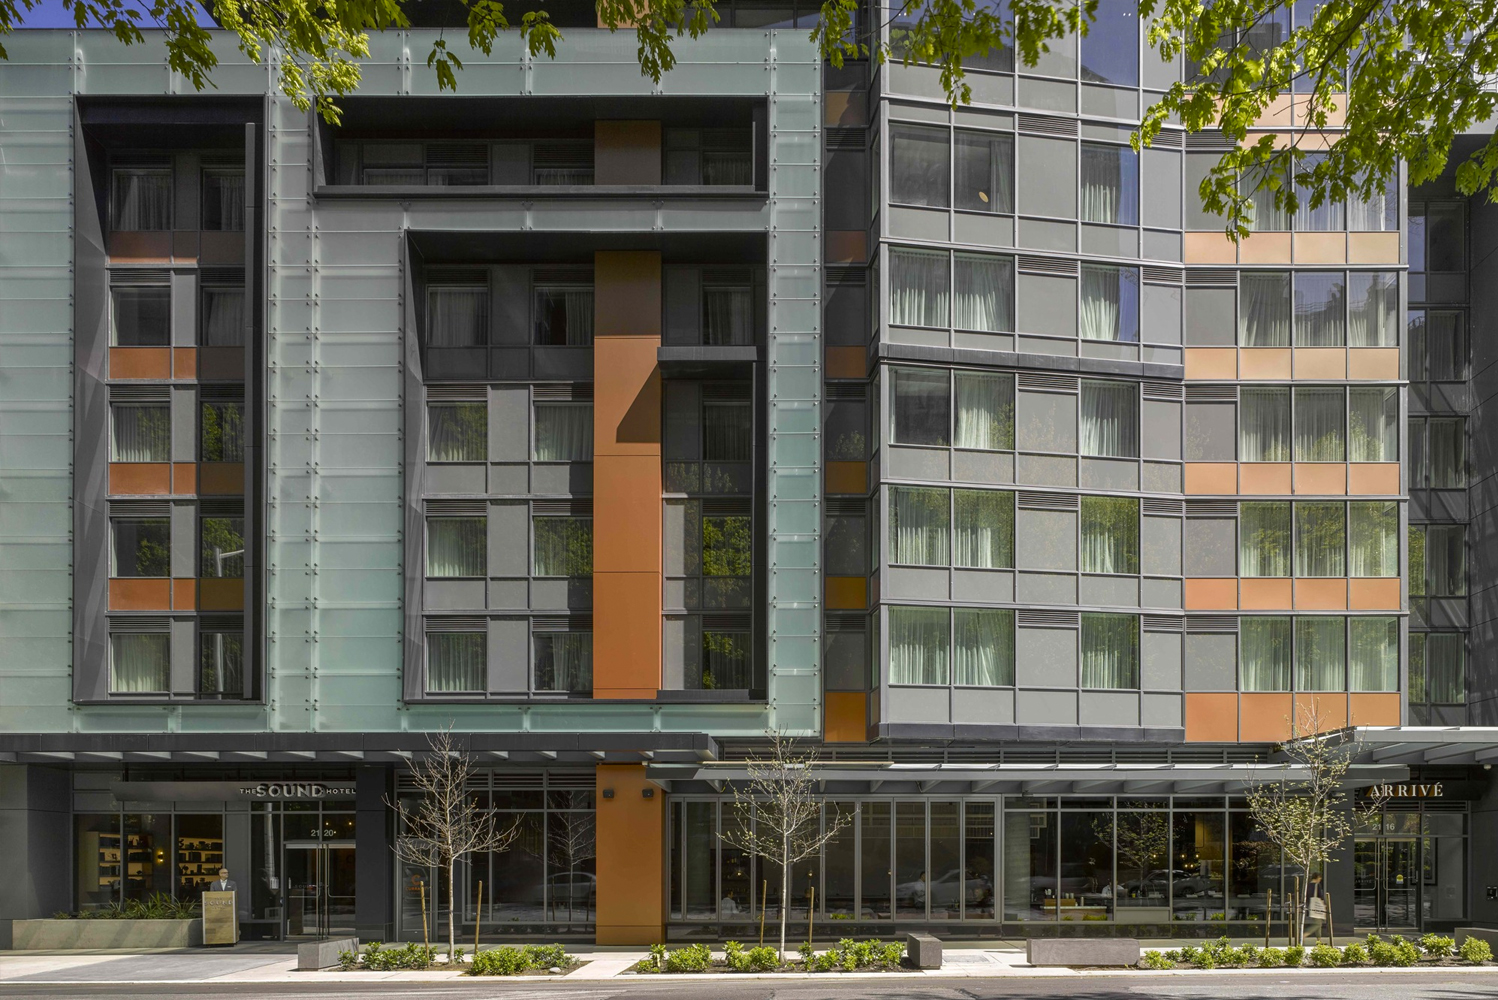 Hirsch Bedner Associates (HBA) completed the design of The Sound Hotel Seattle Belltown, Tapestry Collection by Hilton, a 142-room boutique hotel occupying the first 10 floors of the 42-story Arrivé tower.